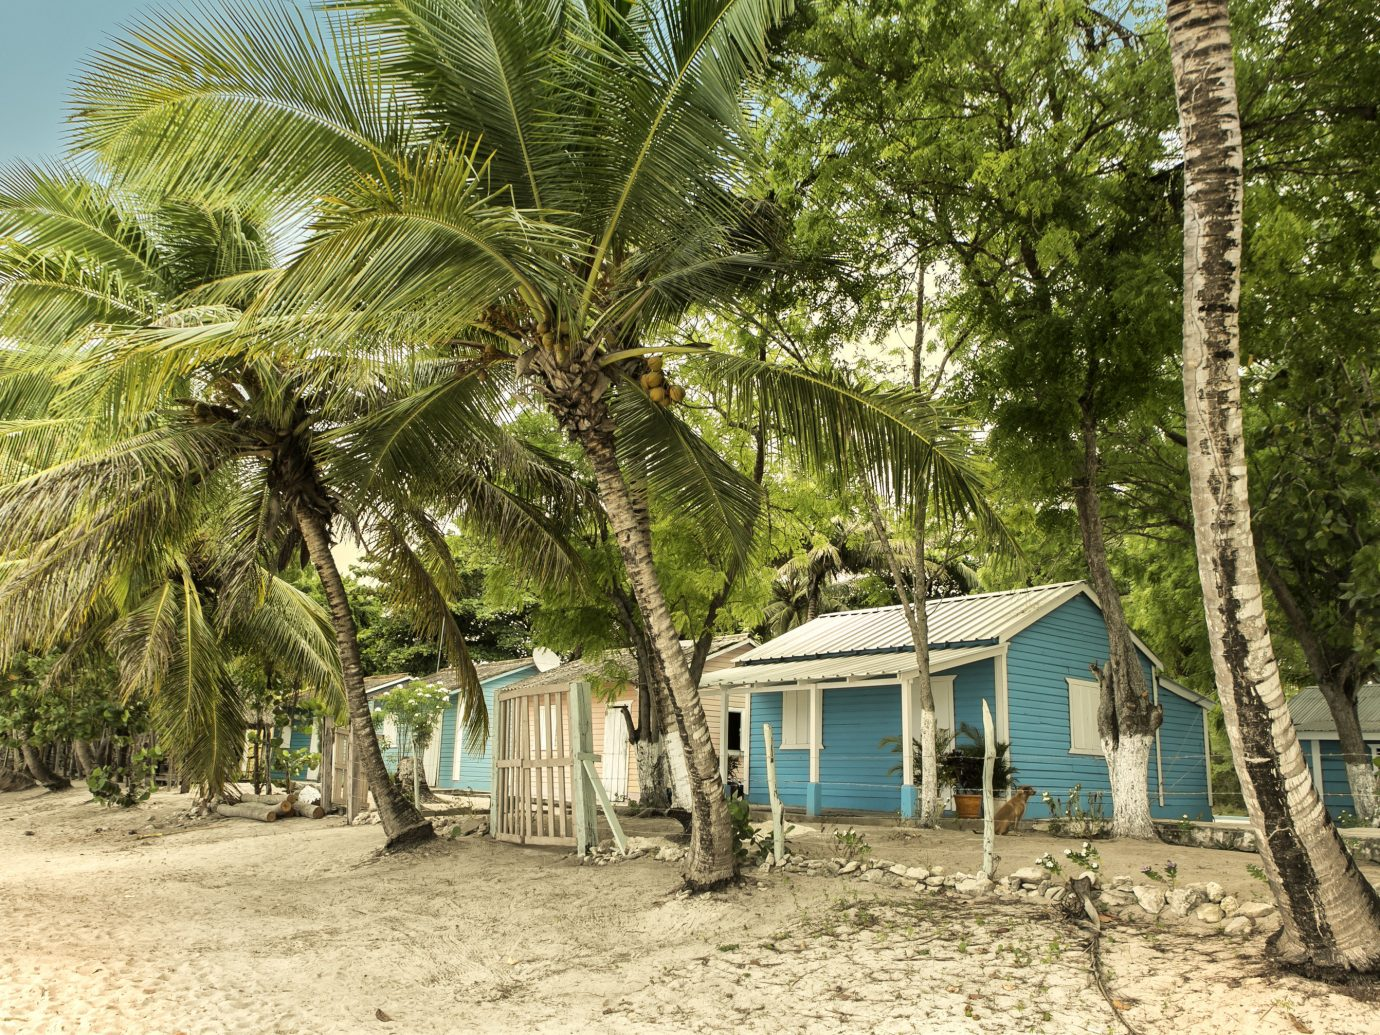 Travel Tips tree outdoor ground plant arecales vacation Beach hut Resort Jungle palm dirt area shade sandy